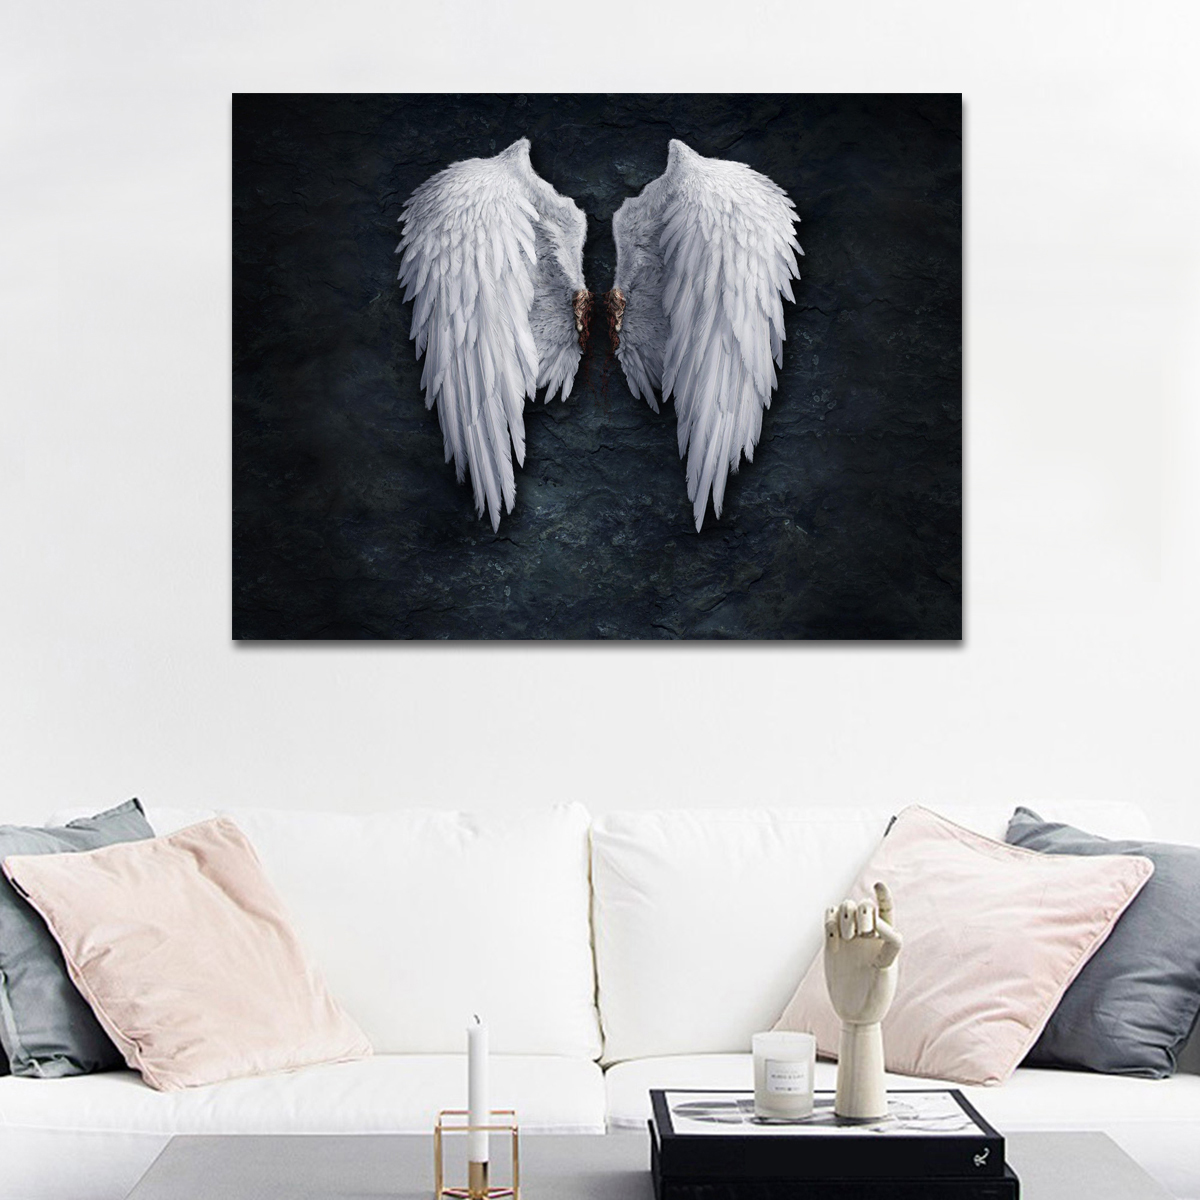 Abstract Canvas Wall Art of Angel Wings Painting White Art Artwork Wall Decor Modern Stretched and Painting Canvas the Picture For Living Room Decoration No Framed